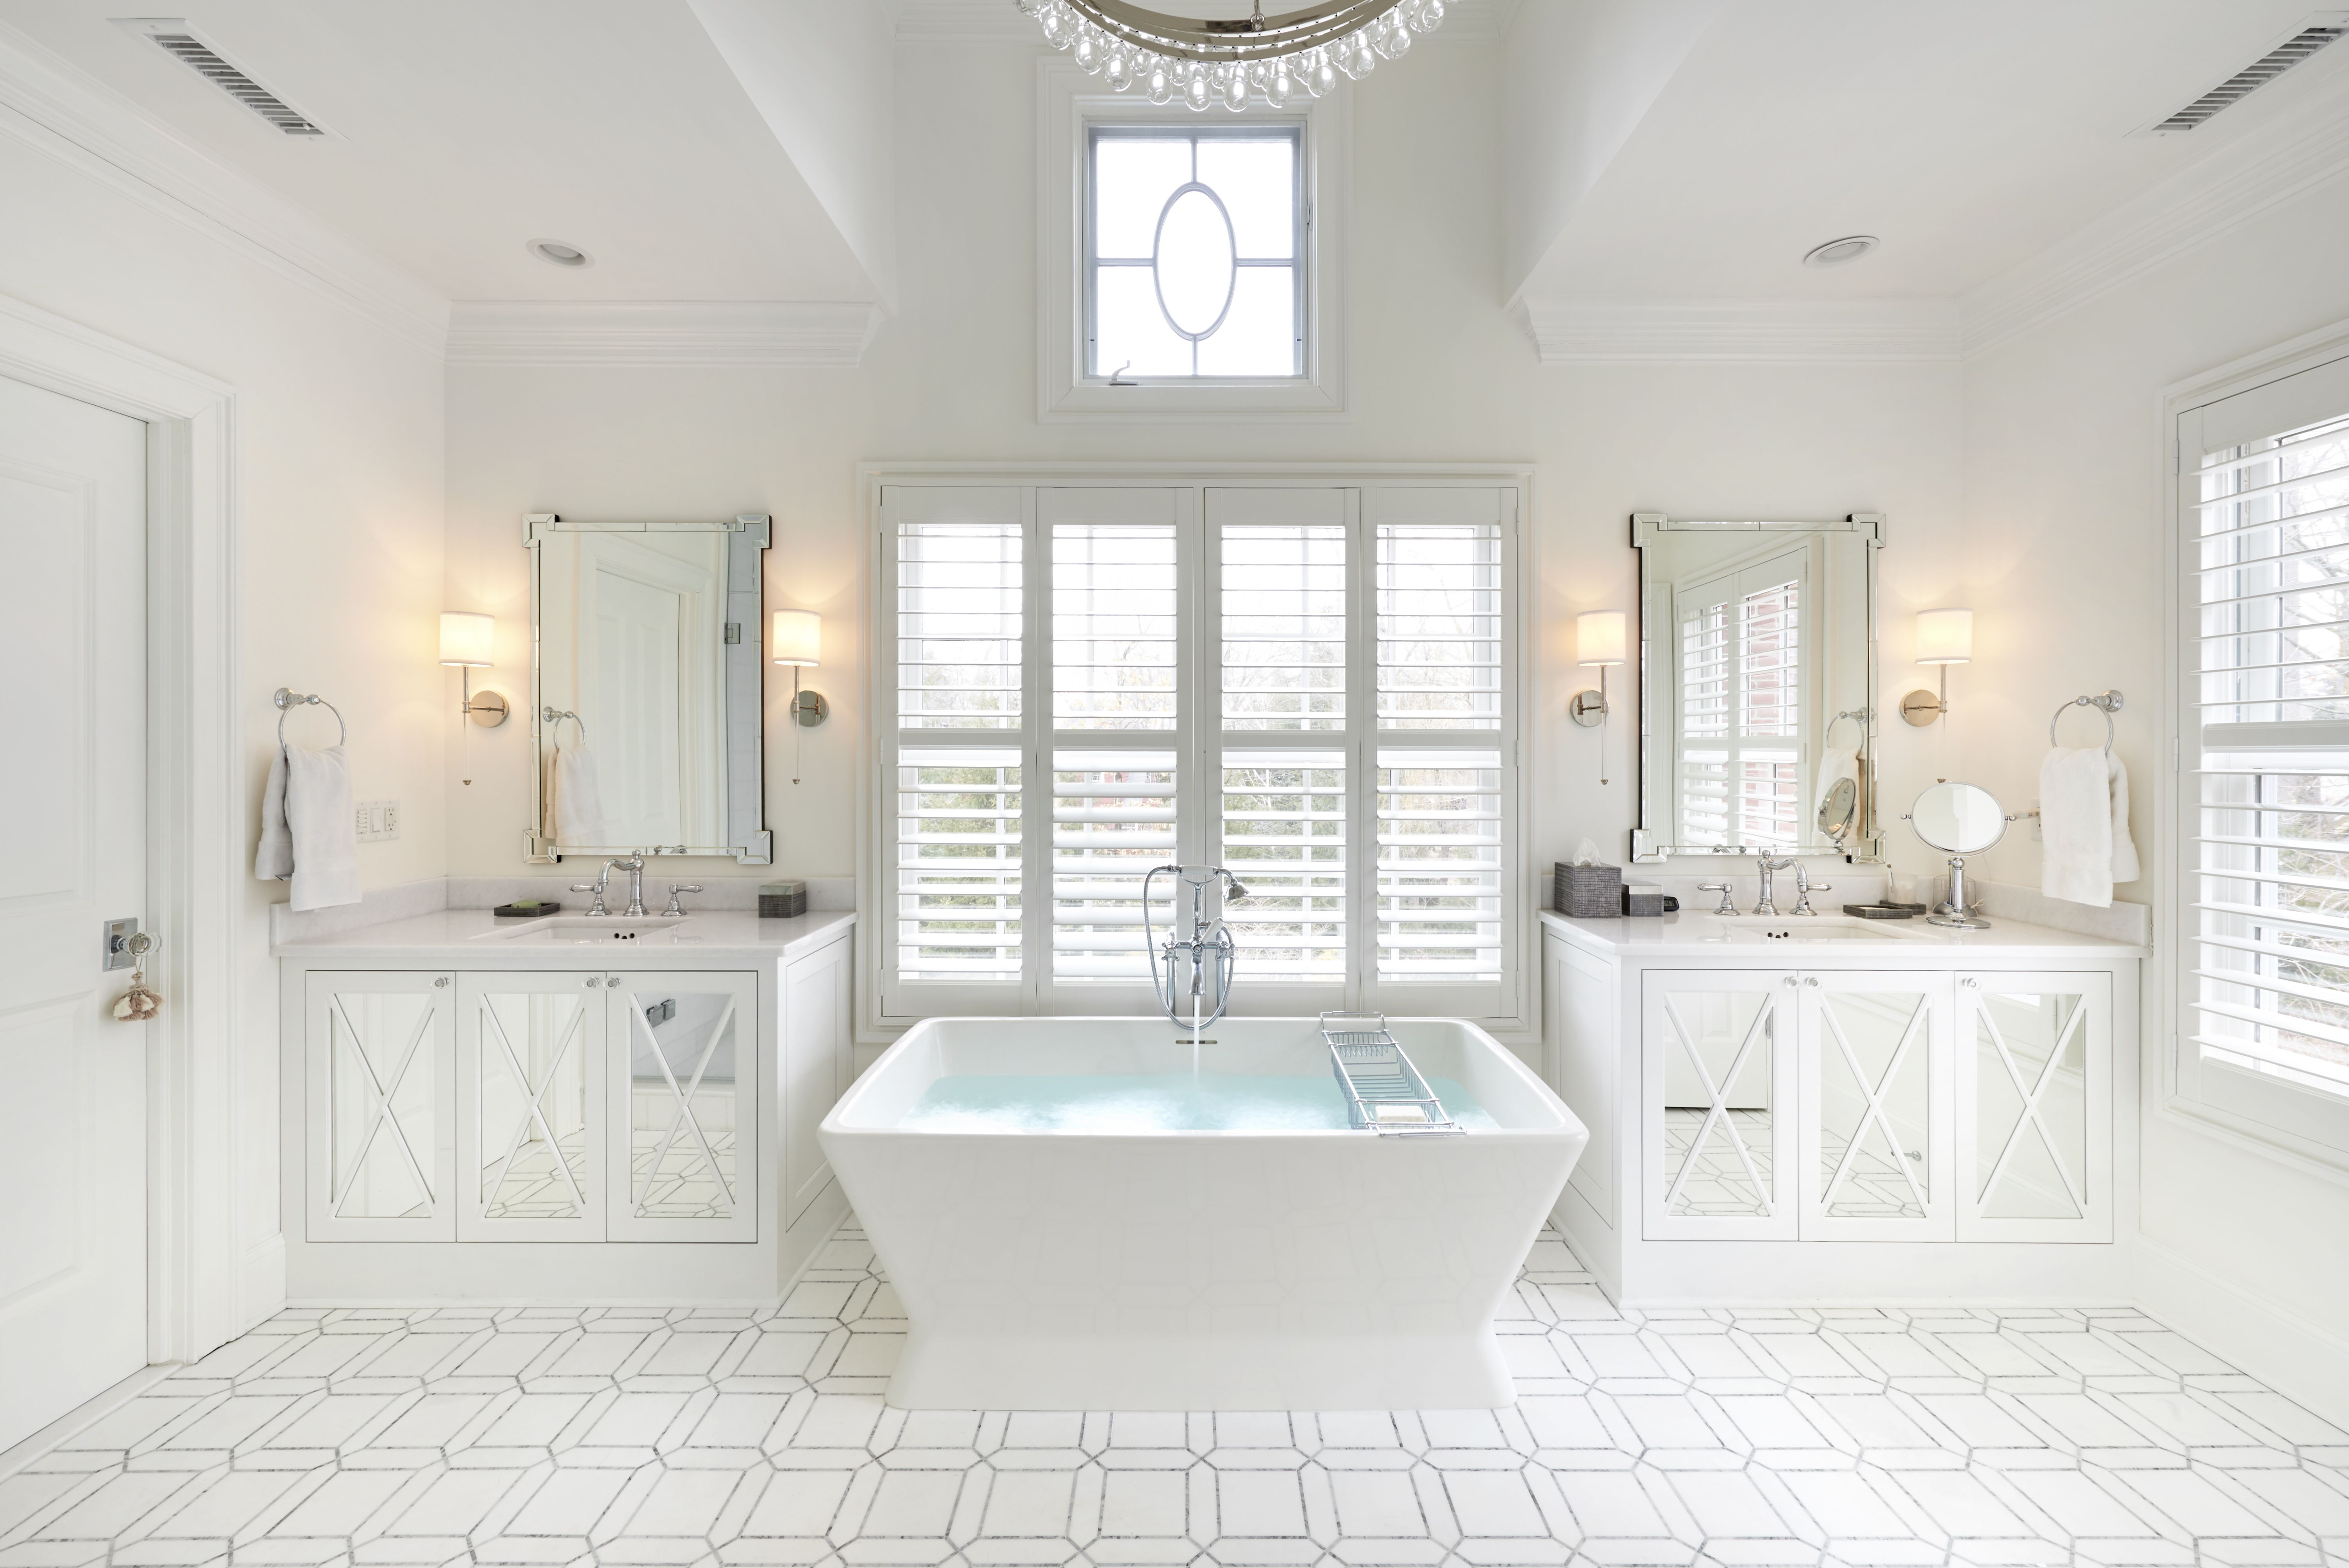 X Marks The Spot In This Traditional Homes Bathroom With A